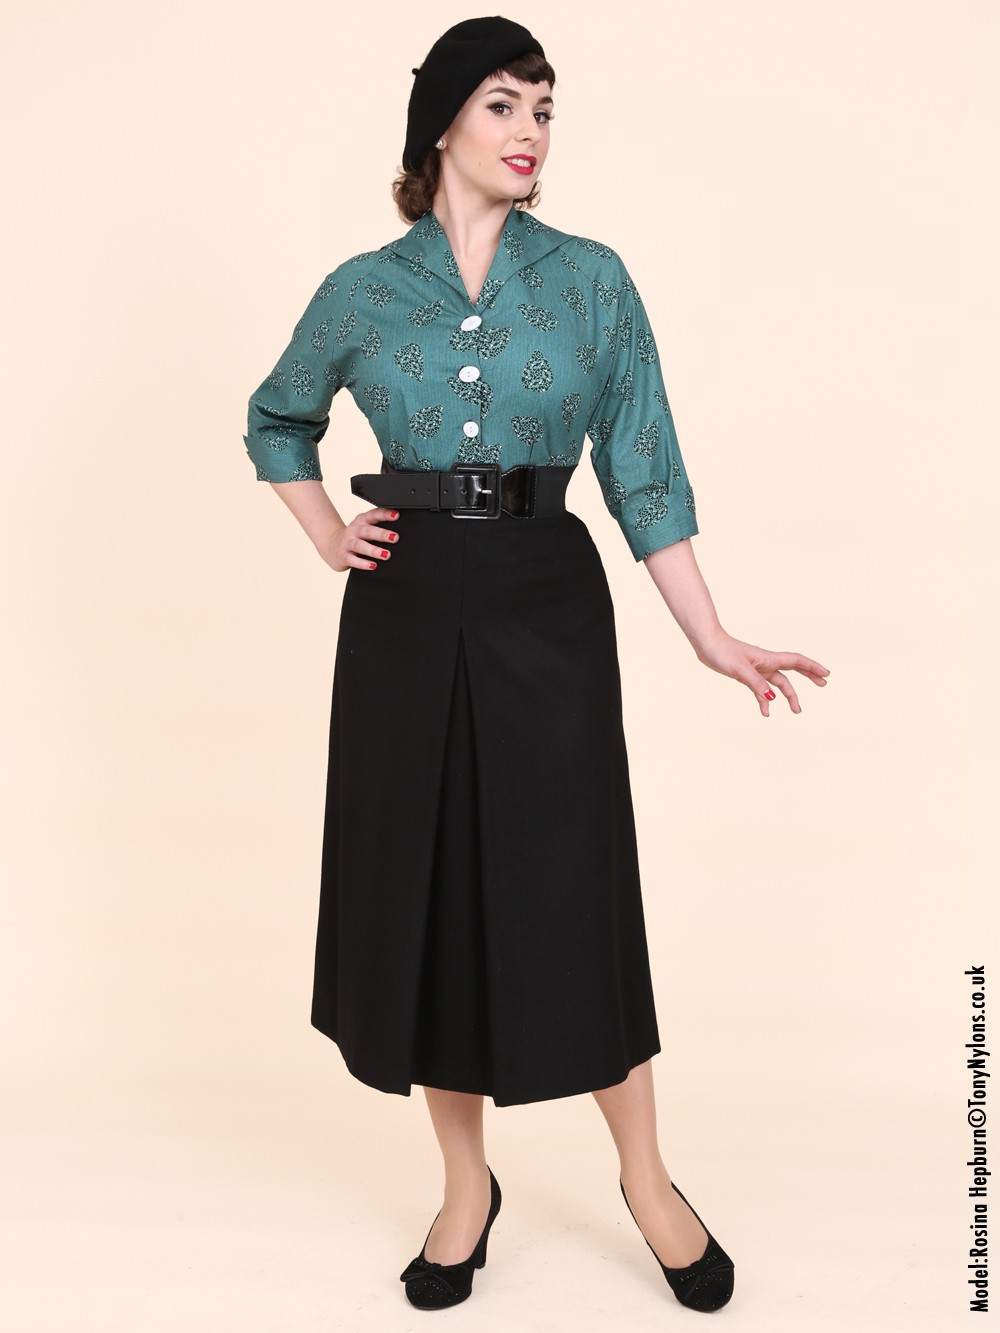 Images of Black Aline Skirt - Watch Out, There's a Clothes About